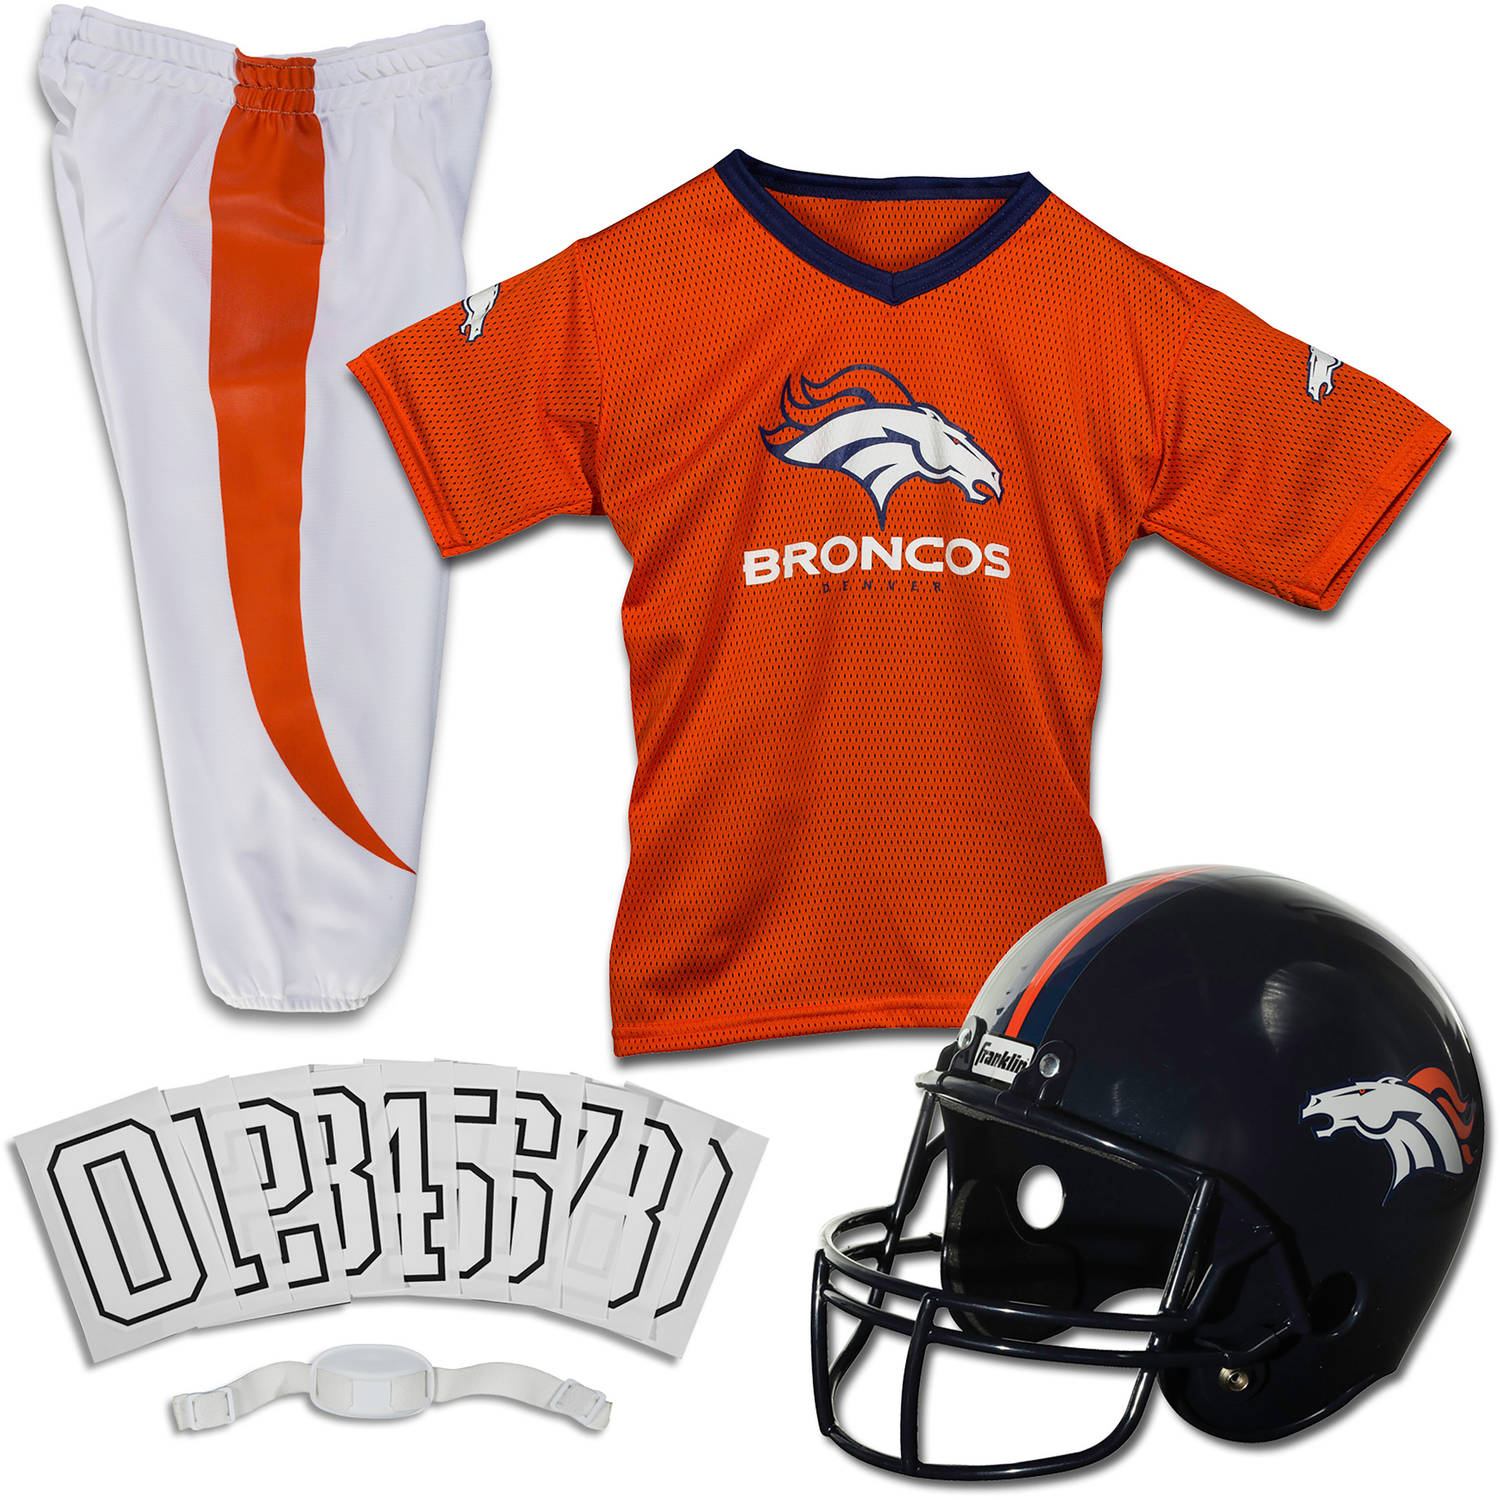 Franklin Sports NFL Deluxe Uniform Set